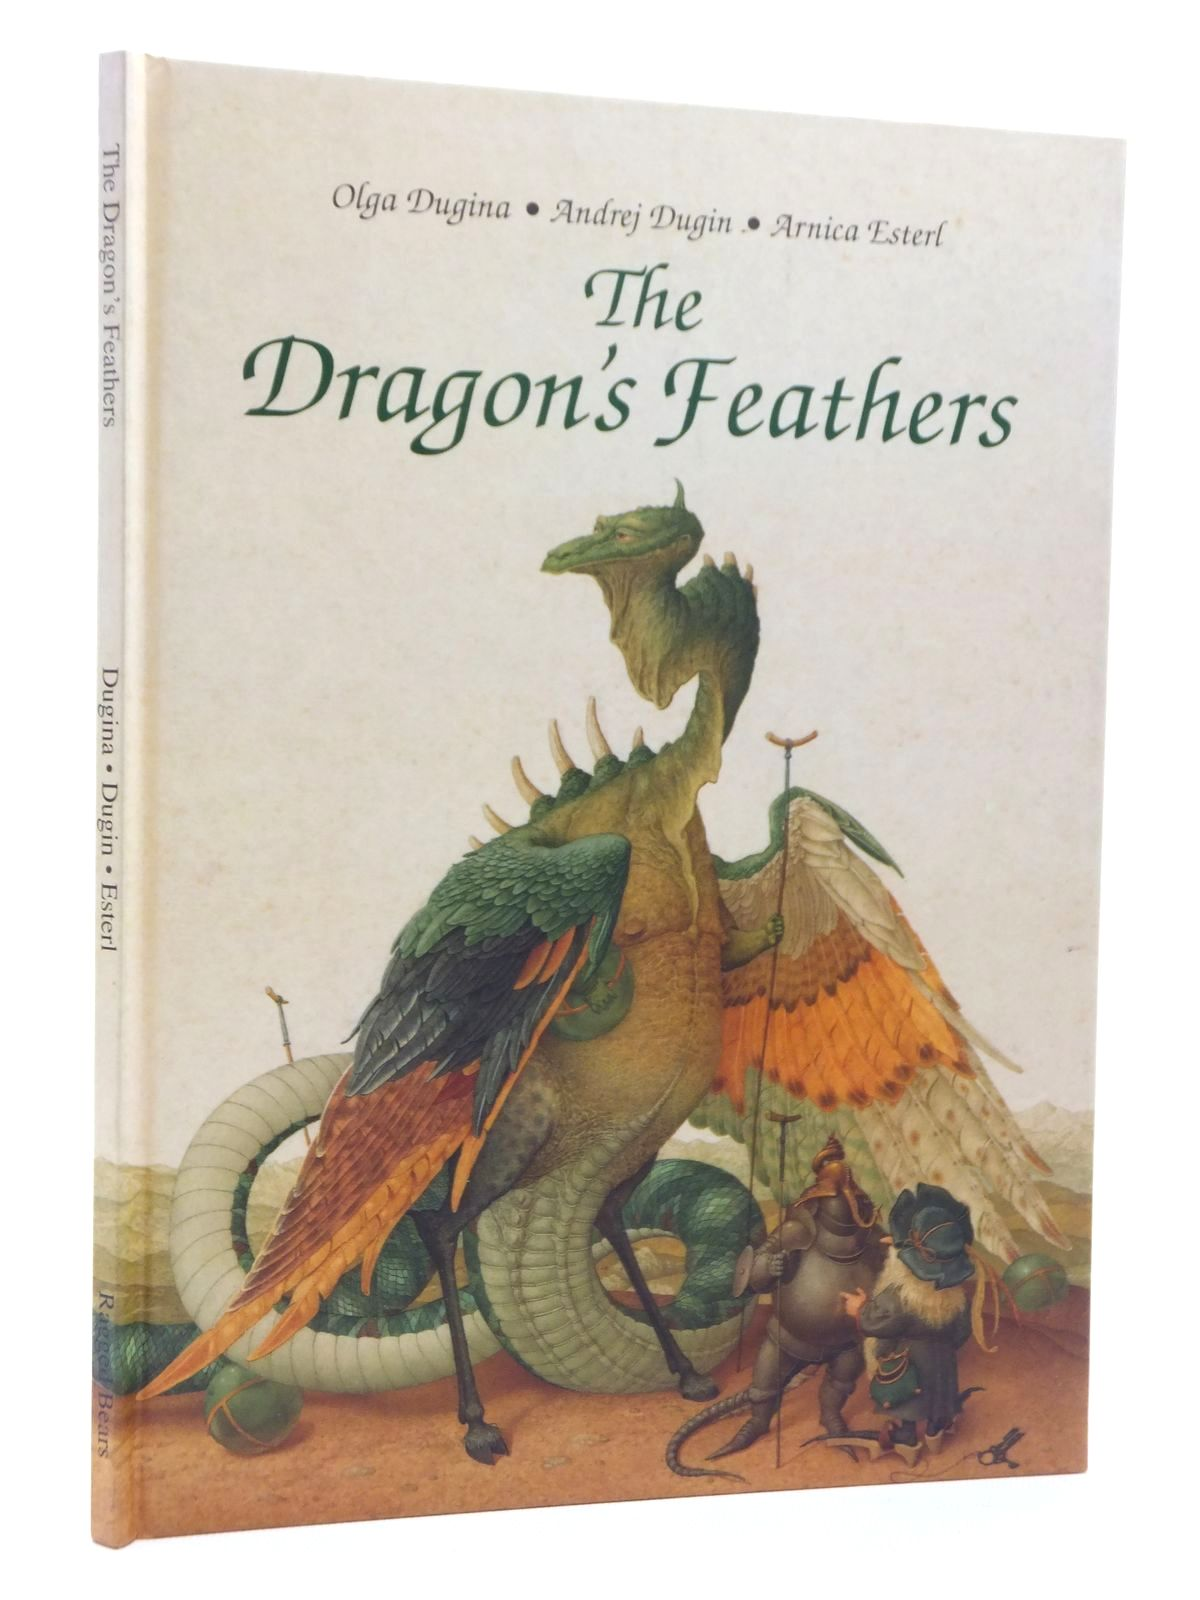 Photo of THE DRAGON'S FEATHERS written by Esterl, Arnica Crampton, Patricia illustrated by Dugin, Andrej Dugina, Olga published by Ragged Bears Limited (STOCK CODE: 1317035)  for sale by Stella & Rose's Books